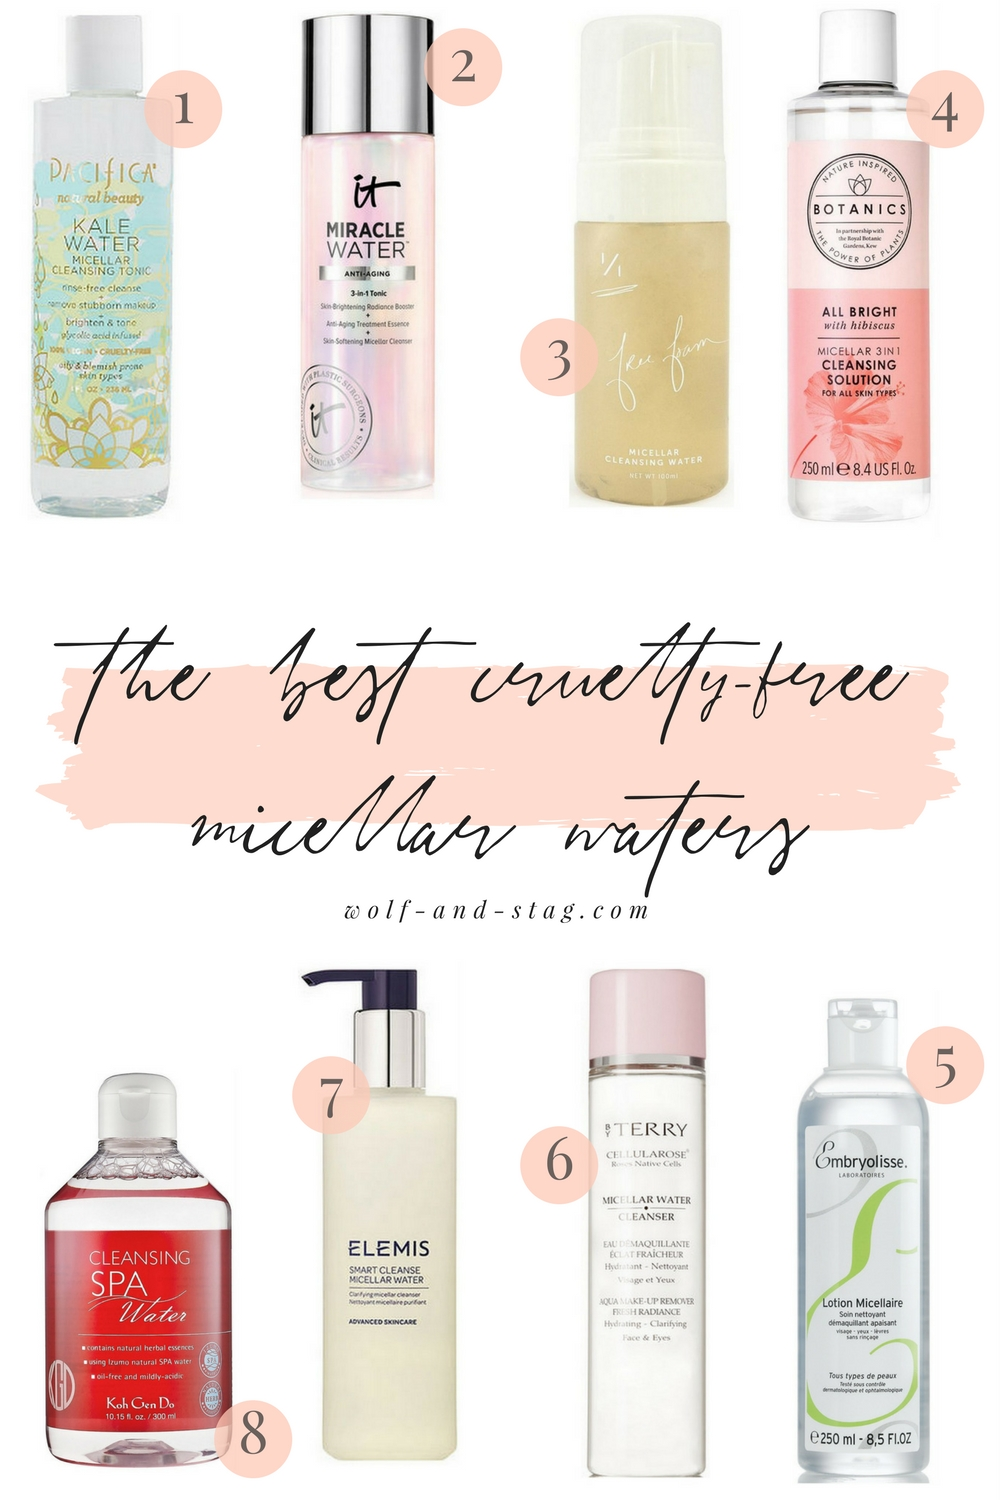 The Best Cruelty-Free Cleansing Micellar Waters | Wolf & Stag